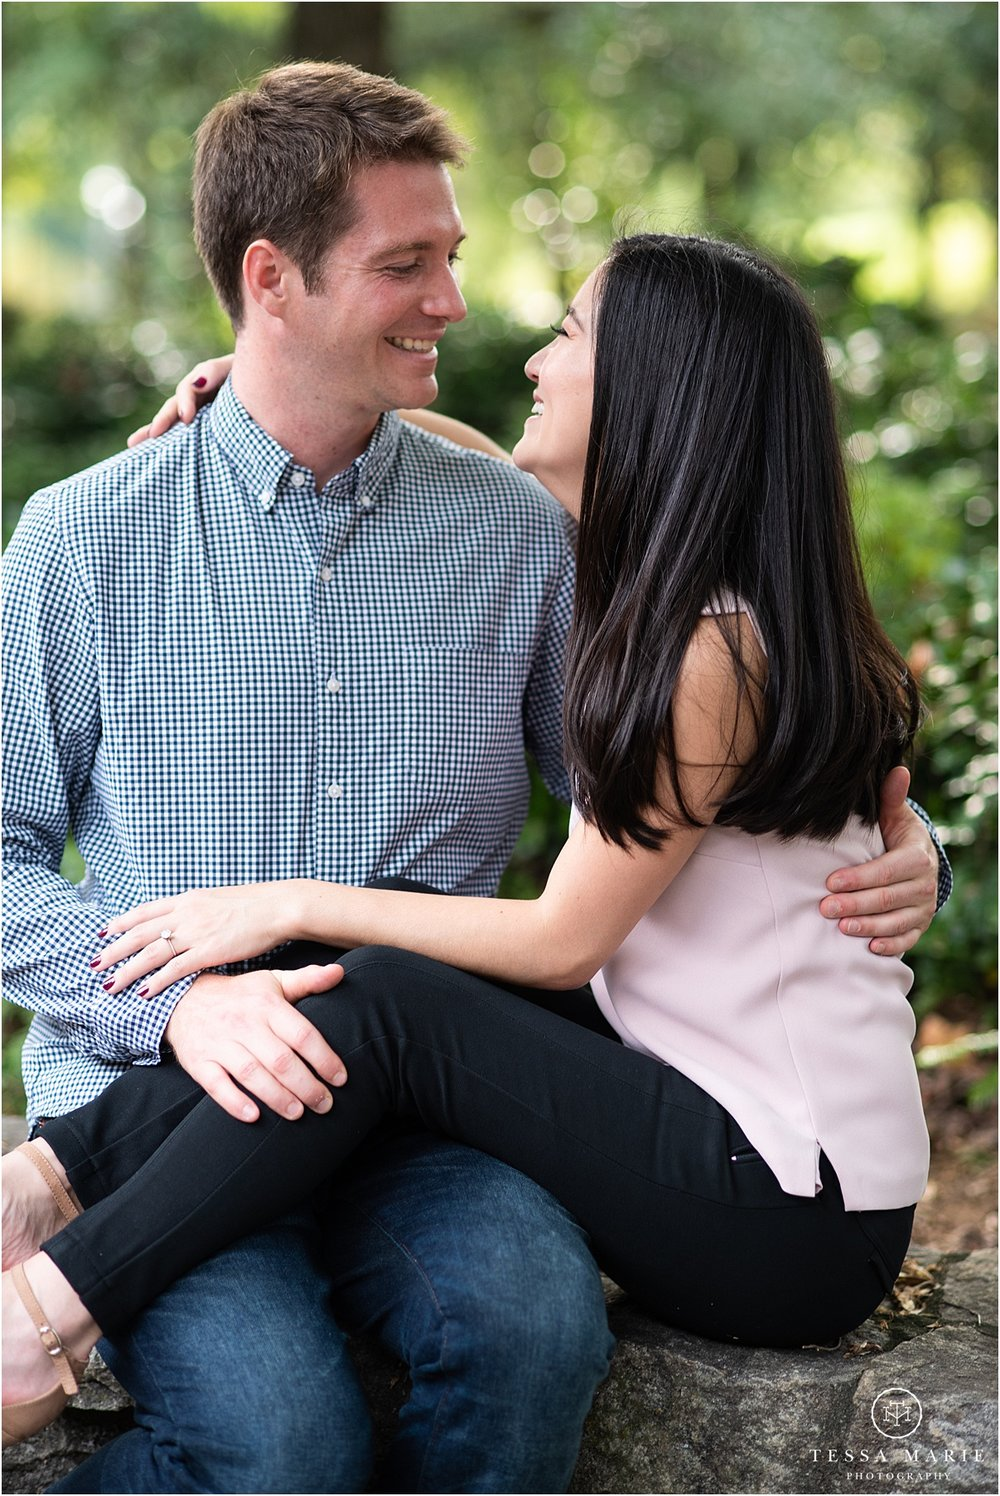 Tessa_marie_photography_wedding_photographer_engagement_pictures_piedmont_park_0017.jpg